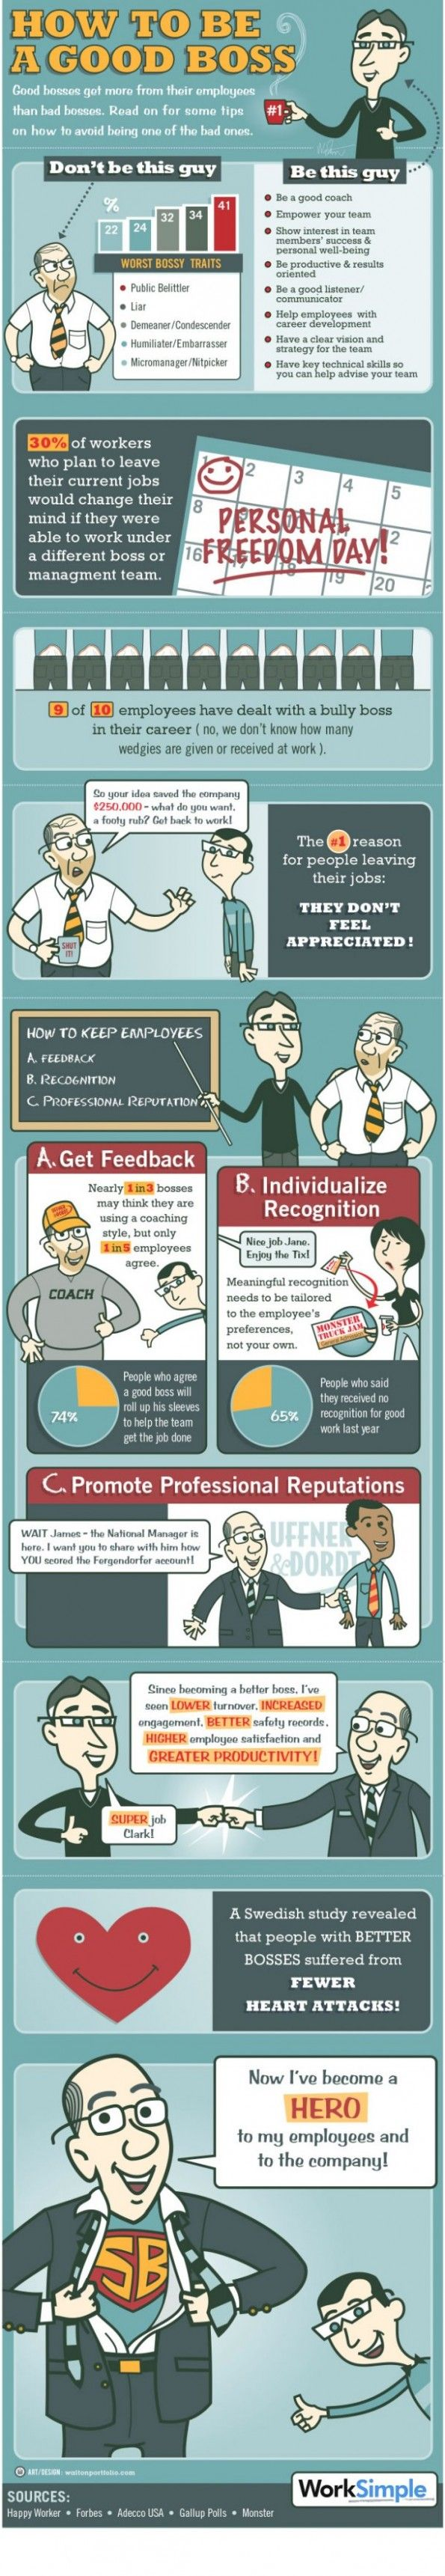 images about work try to make your employees feel appreciated provide them useful feedback and help them